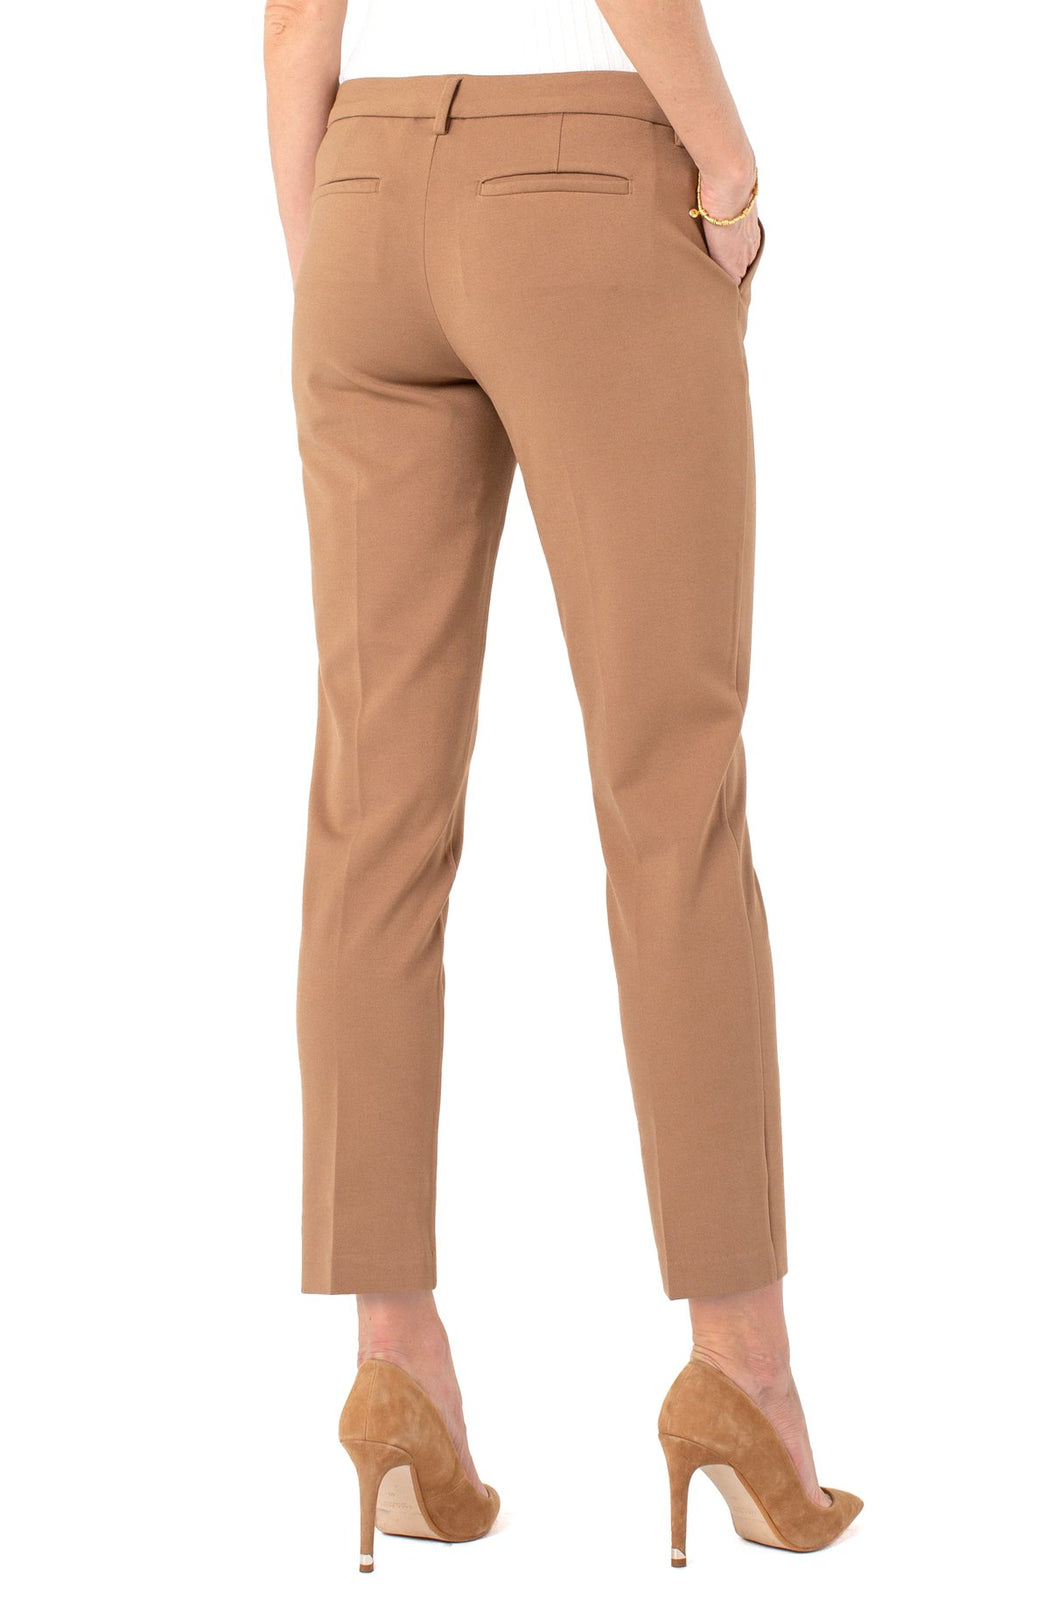 "Our signature knit trouser with superb stretch and recovery. This trouser is known to be super versatile, from work to weekend and days on the go.   FEATURES:  29'' Inseam Mid-rise 9-1/8"" Front rise; 12-1/2"" Leg opening for size 4 Set-in waistband with belt loops Zip-fly with hidden hook and eye closure Slanted side pockets and welt back pockets"